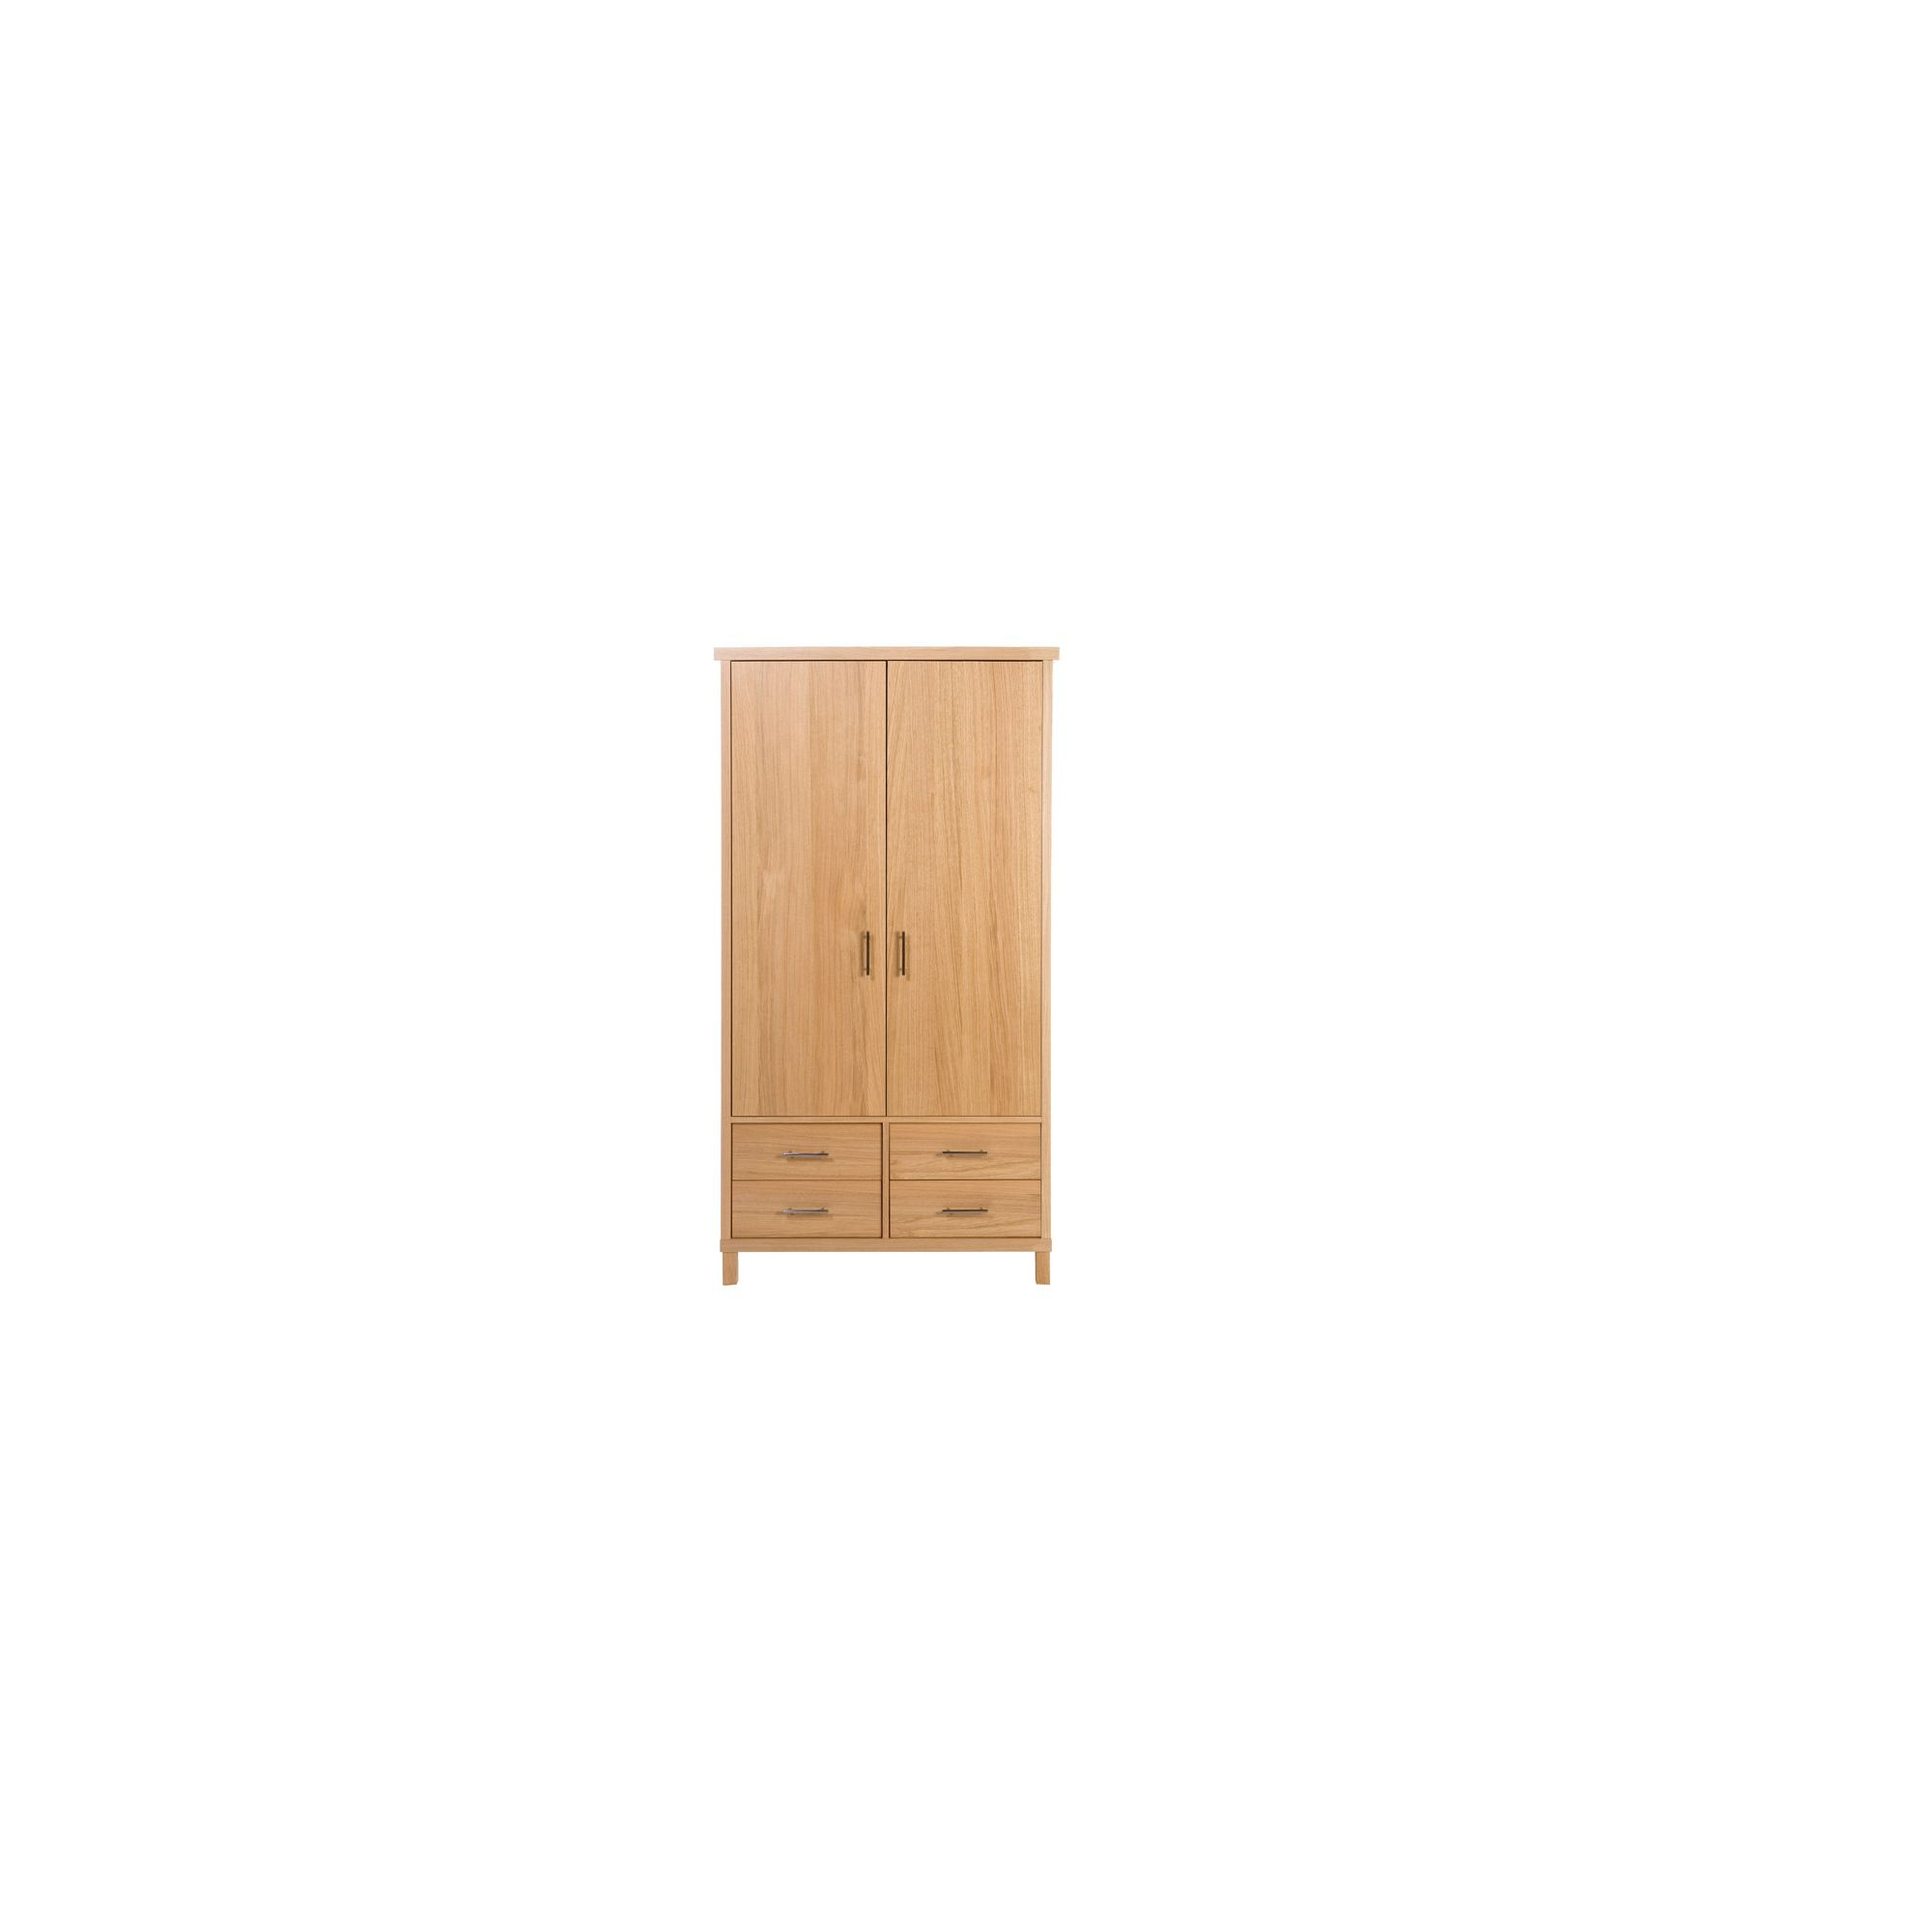 Urbane Designs Vettori Oak Bedroom 2 Door 4 Drawer Wardrobe at Tesco Direct